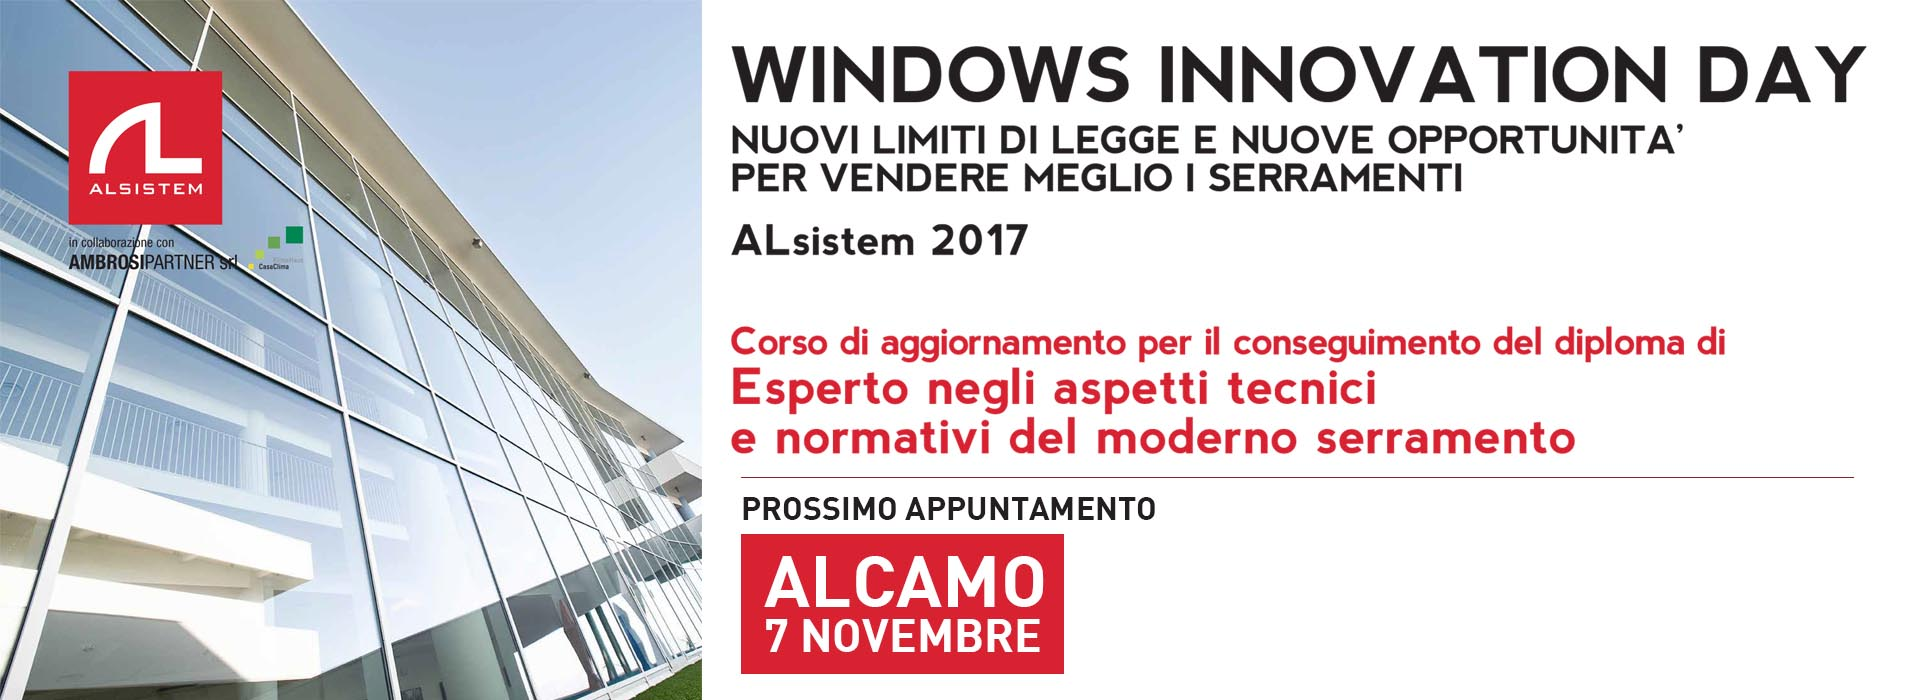 Windows Innovation Day Alcamo 7 Novembre Edilsider S P A